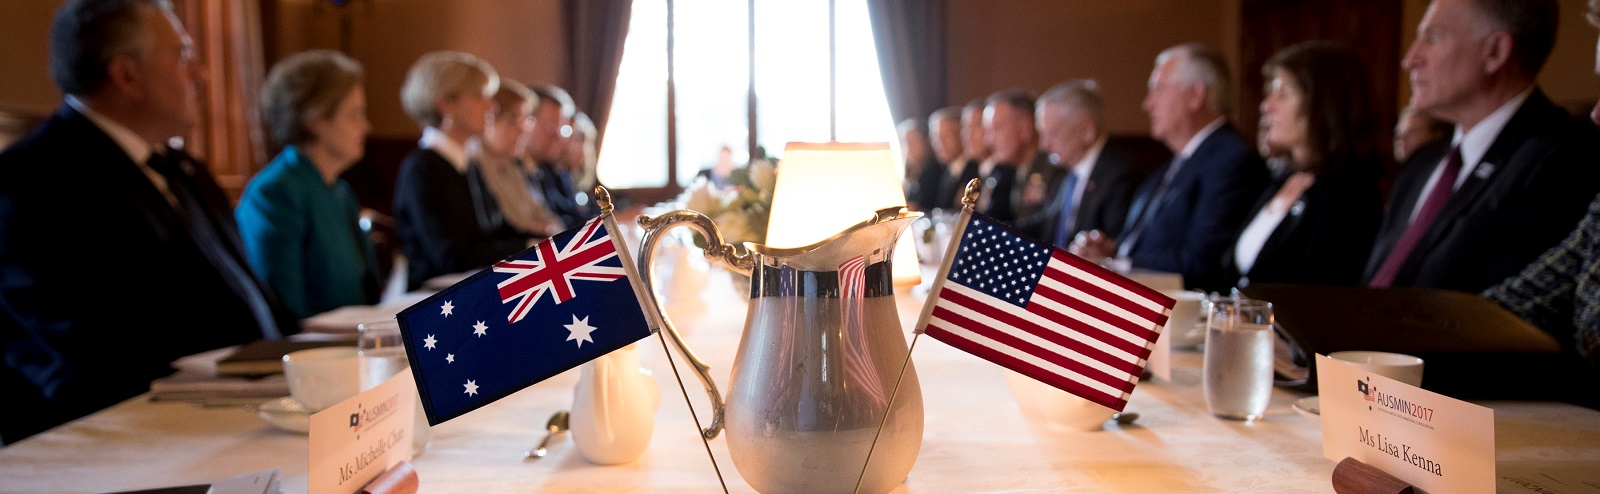 AUSMIN talks get underway in Sydney today (Photo: Australian Defence Image Library)